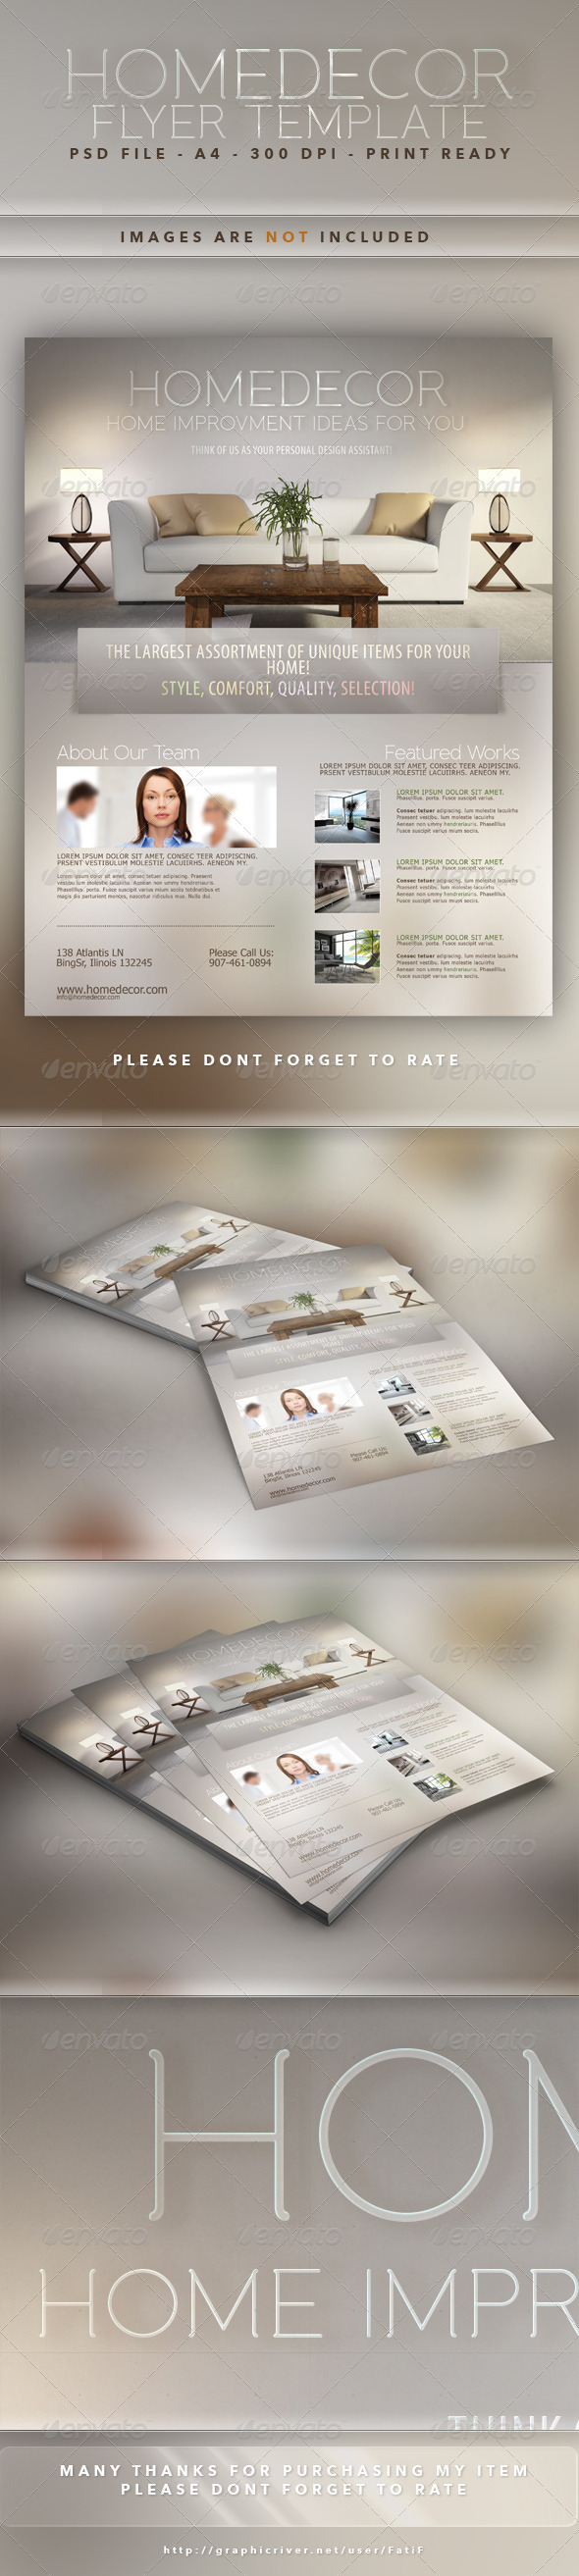 Home Decor Flyer Template - Corporate Flyers